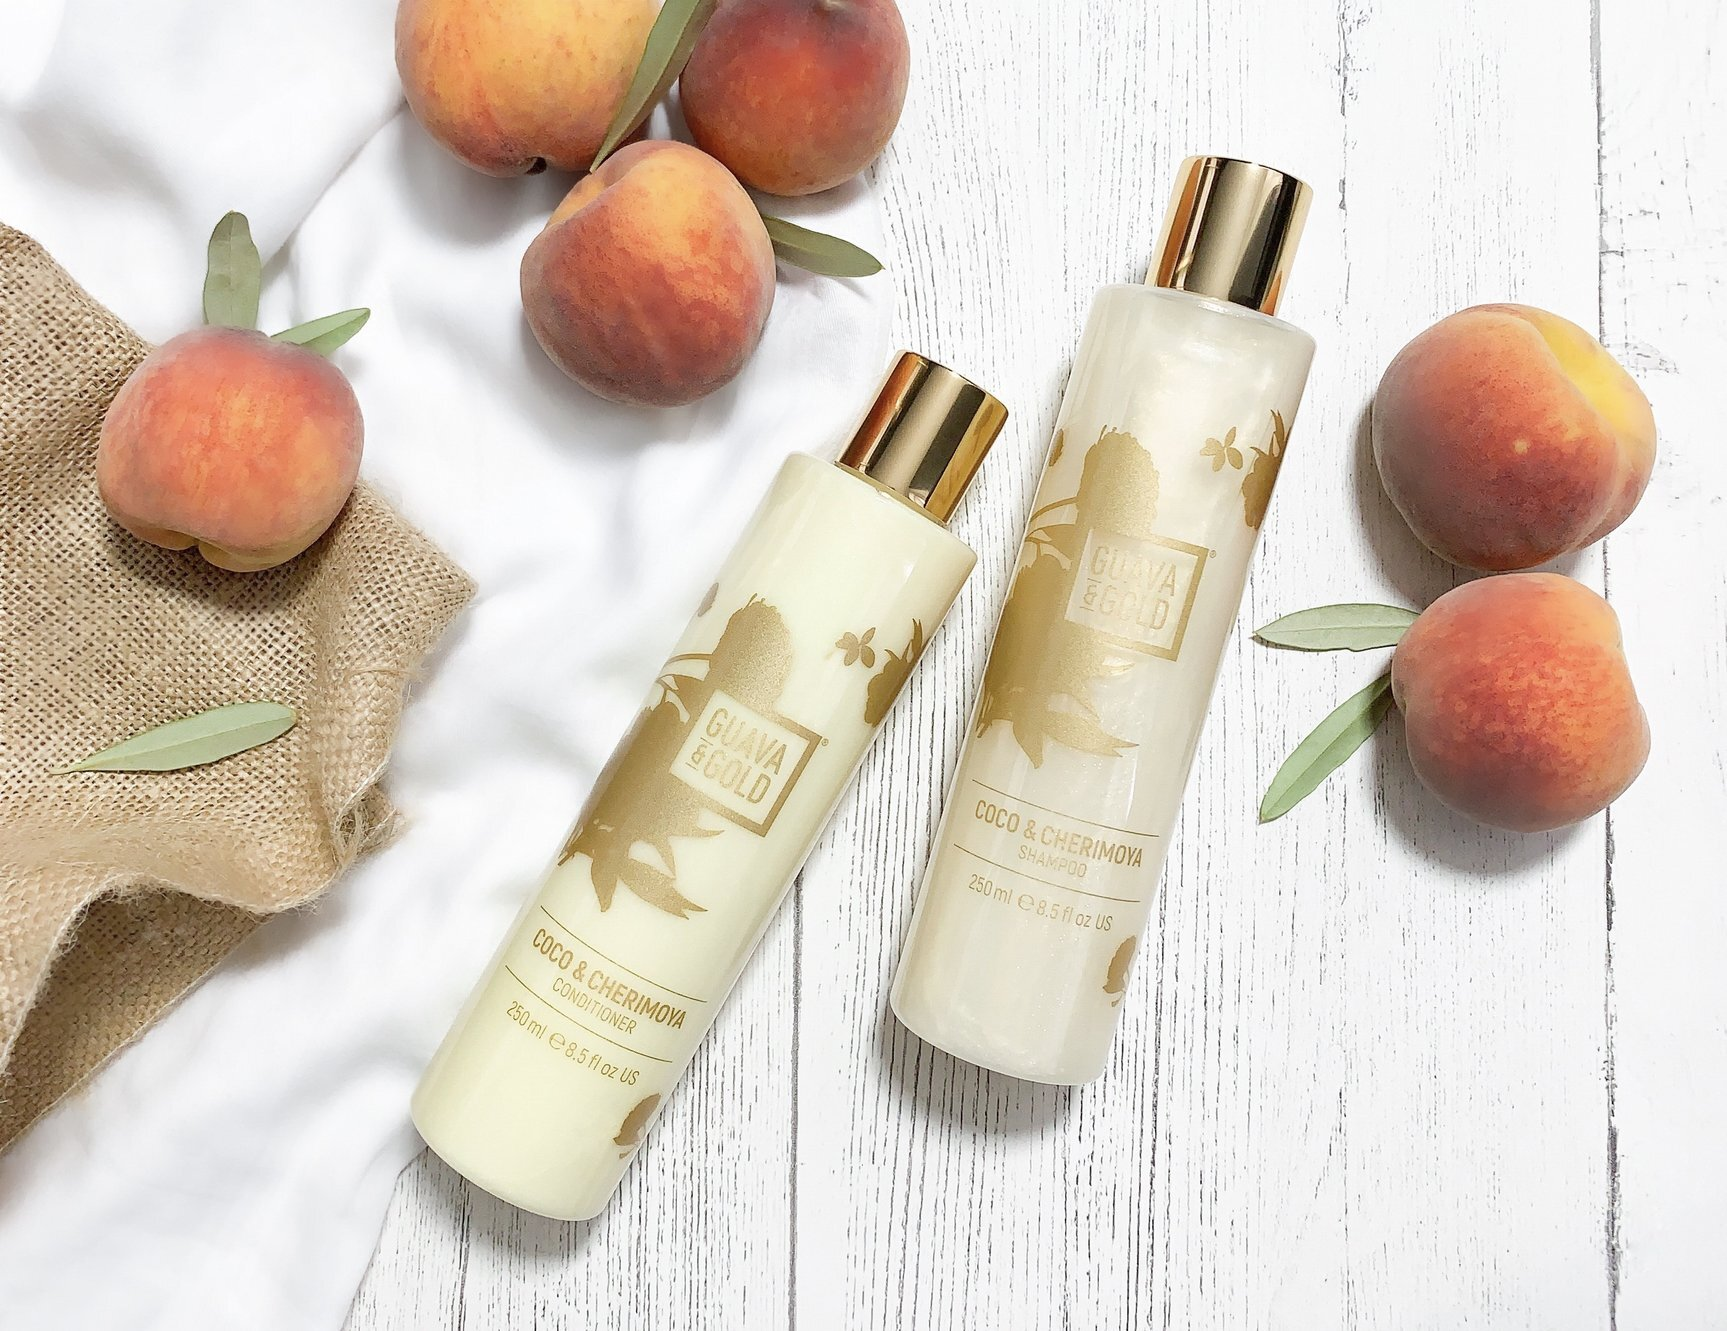 Guava & Gold product images on Shopify website